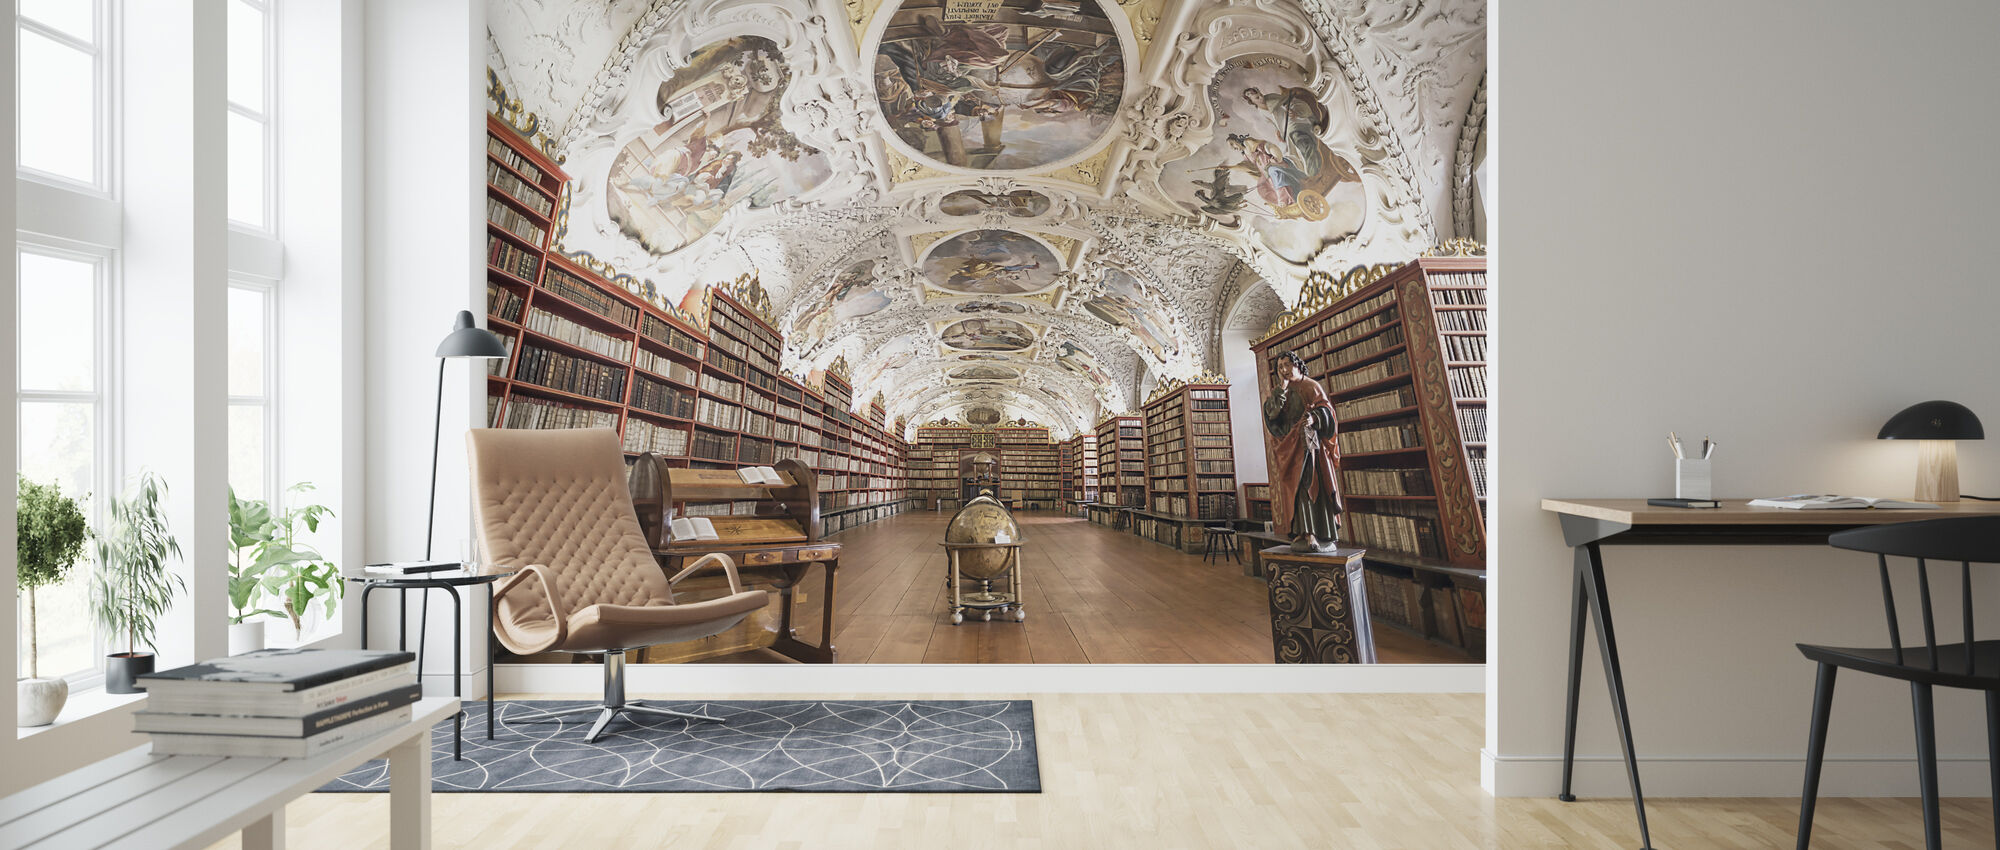 Monastery Library - Wallpaper - Living Room